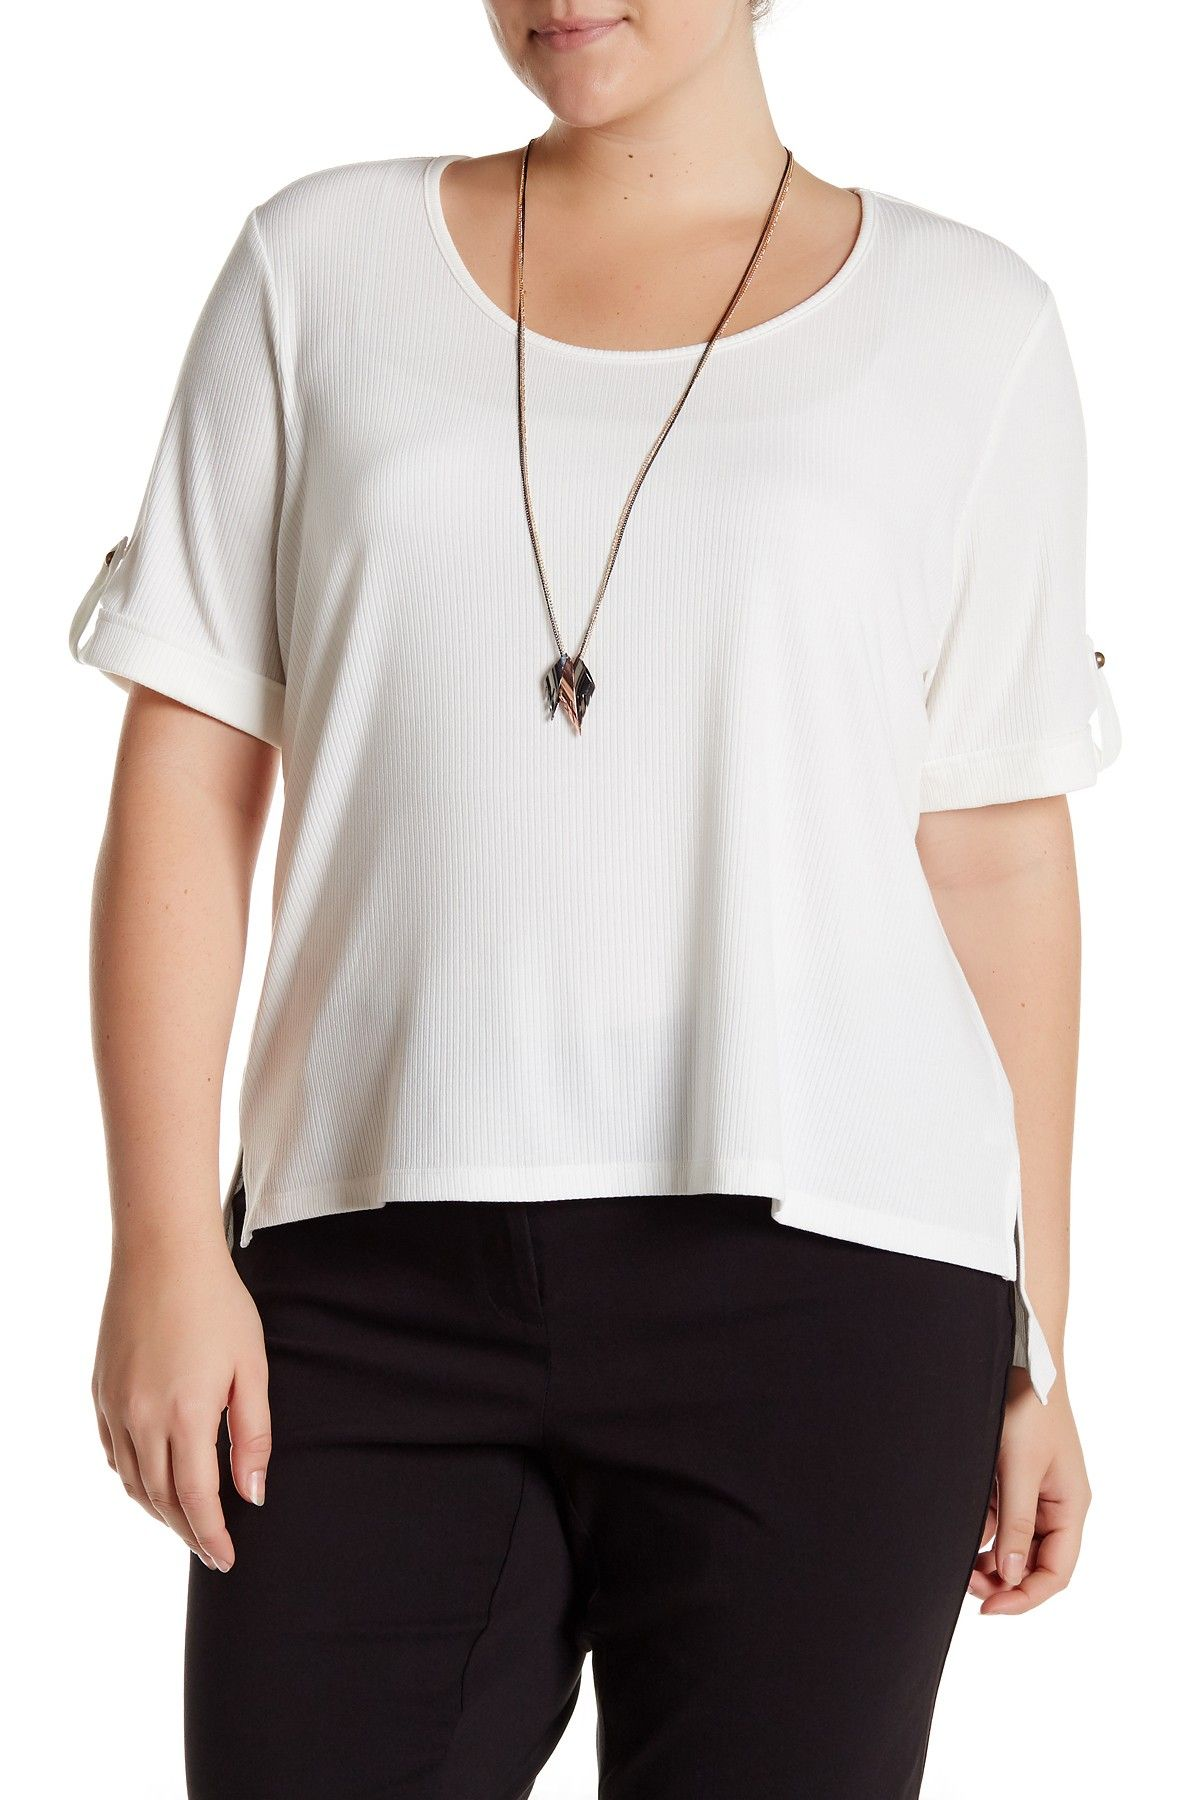 7881e4de166b9 Ribbed Short Sleeve Tee with Necklace (Plus Size)